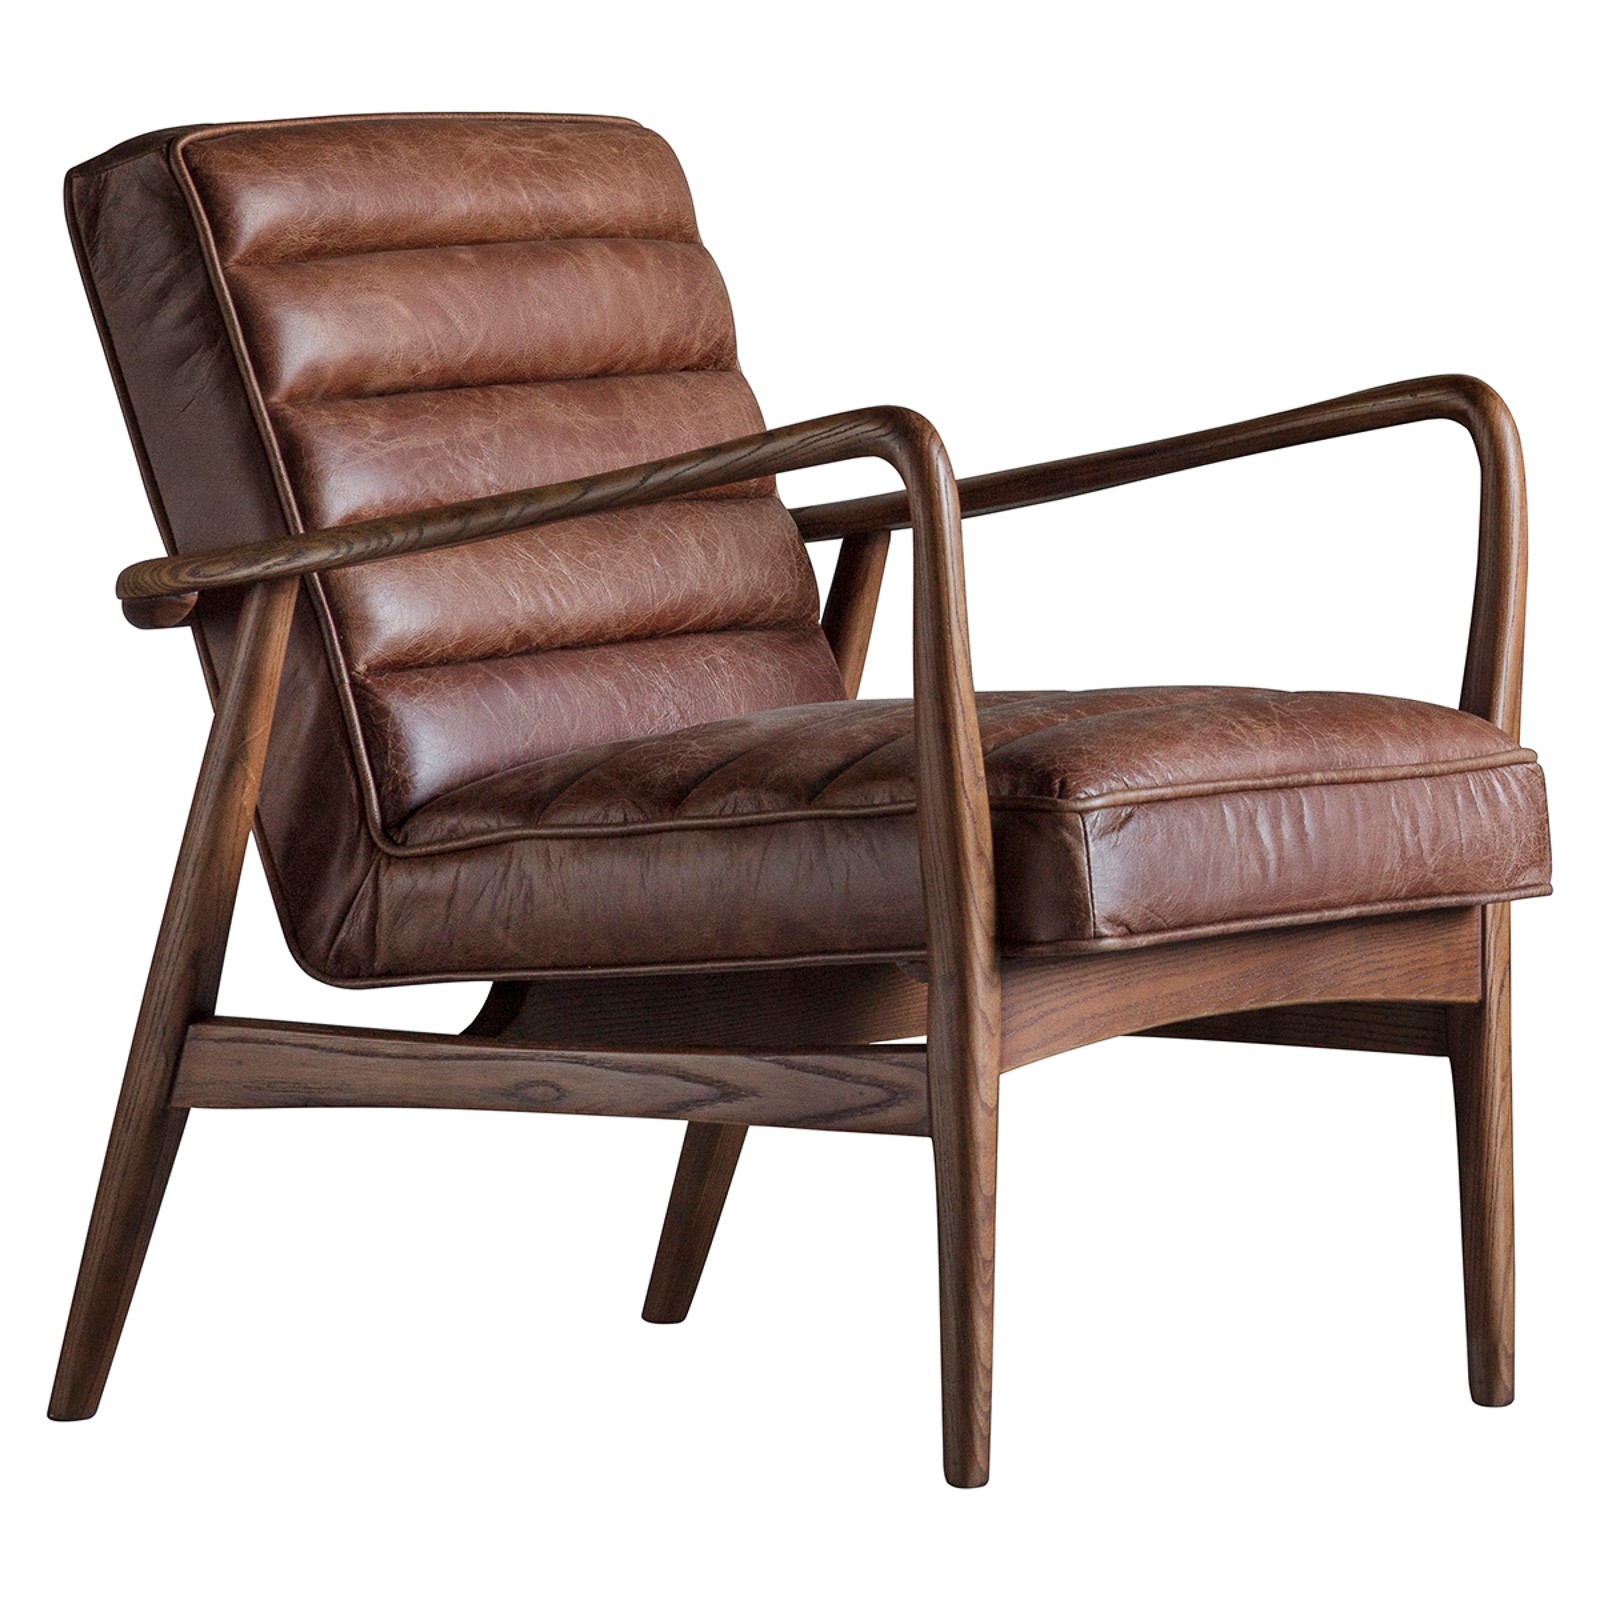 Danny Top Grain Leather & Timber Armchair, Antique Brown